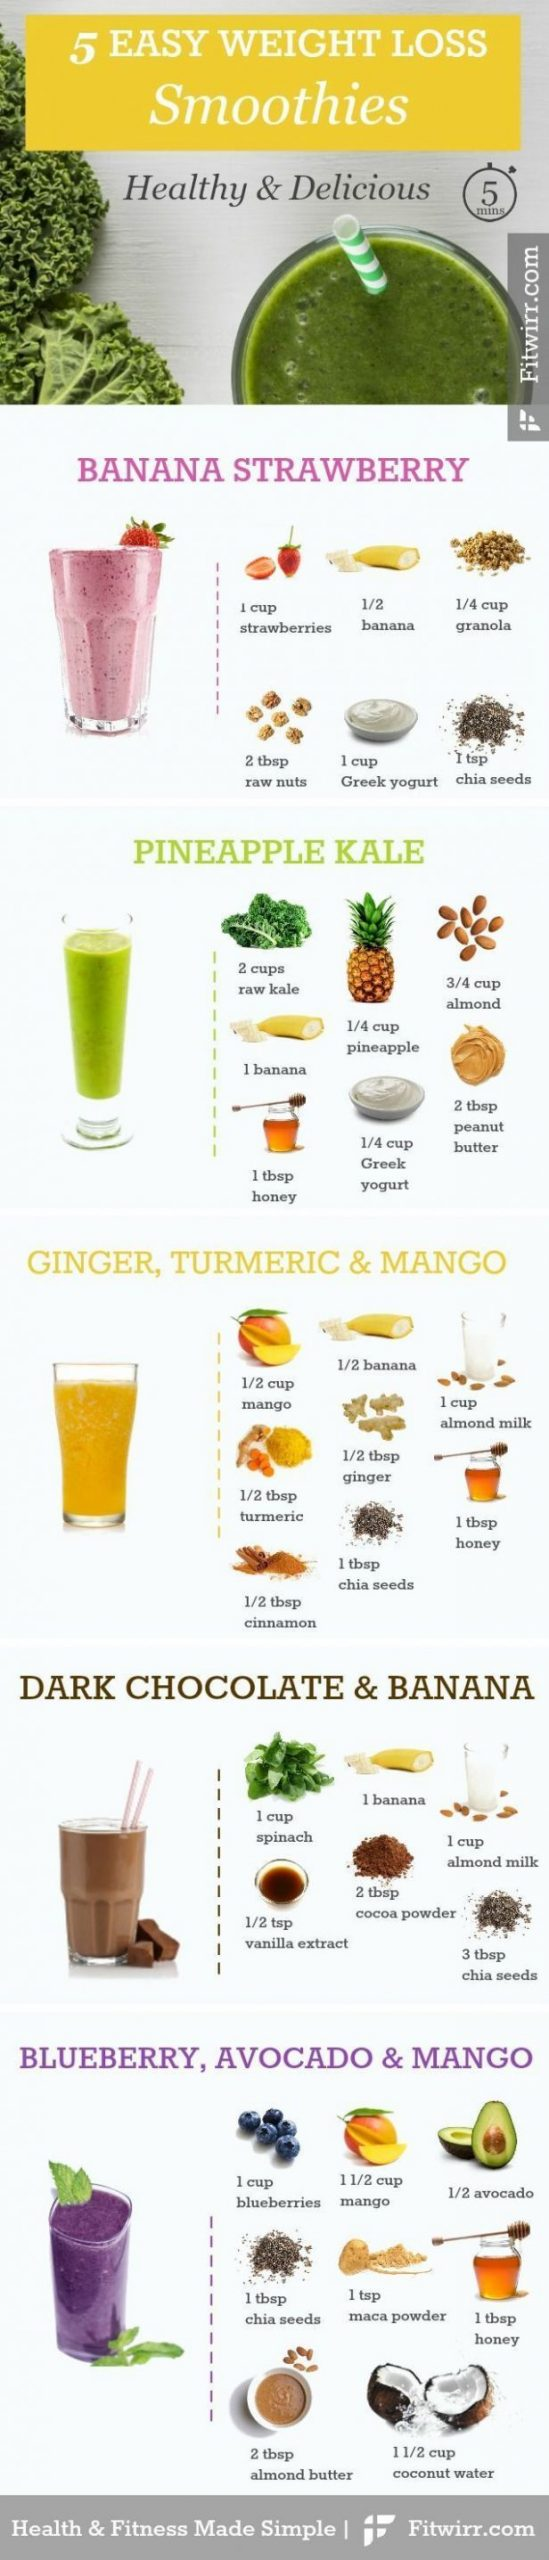 Pin on breakfast - Smoothie Recipes For Weight Loss That Taste Good